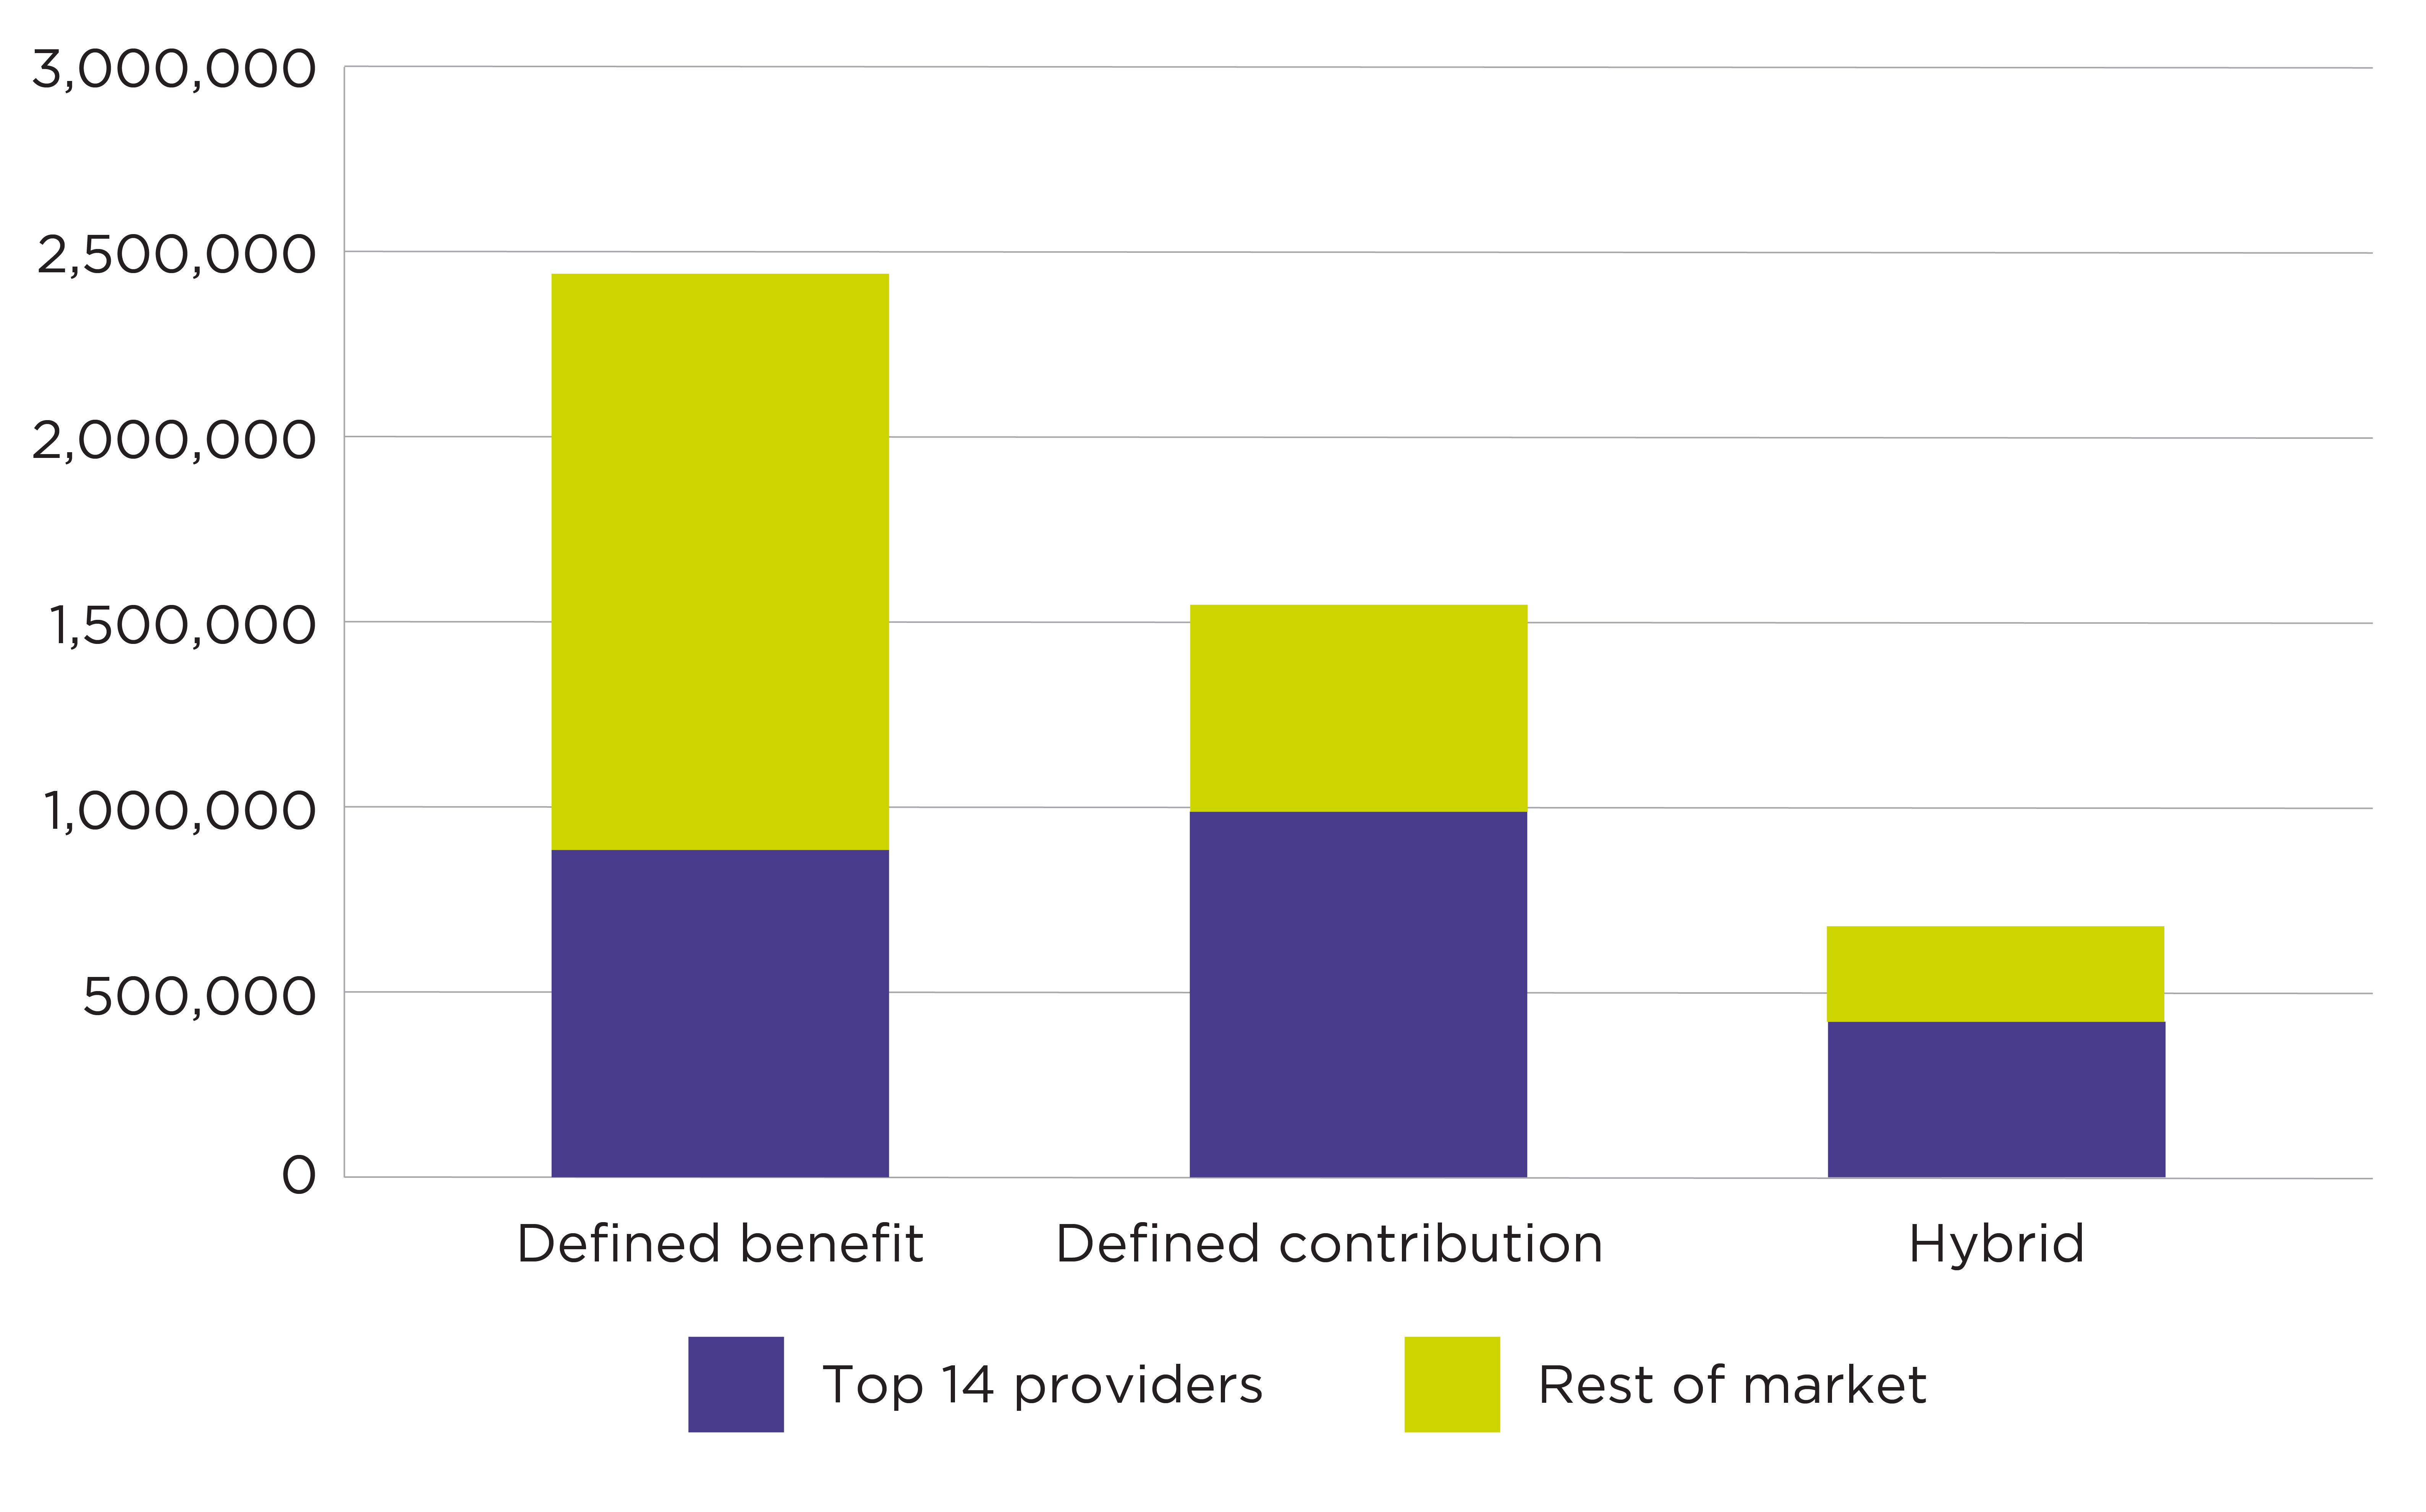 Graph showing administrator coverage of members by benefit type